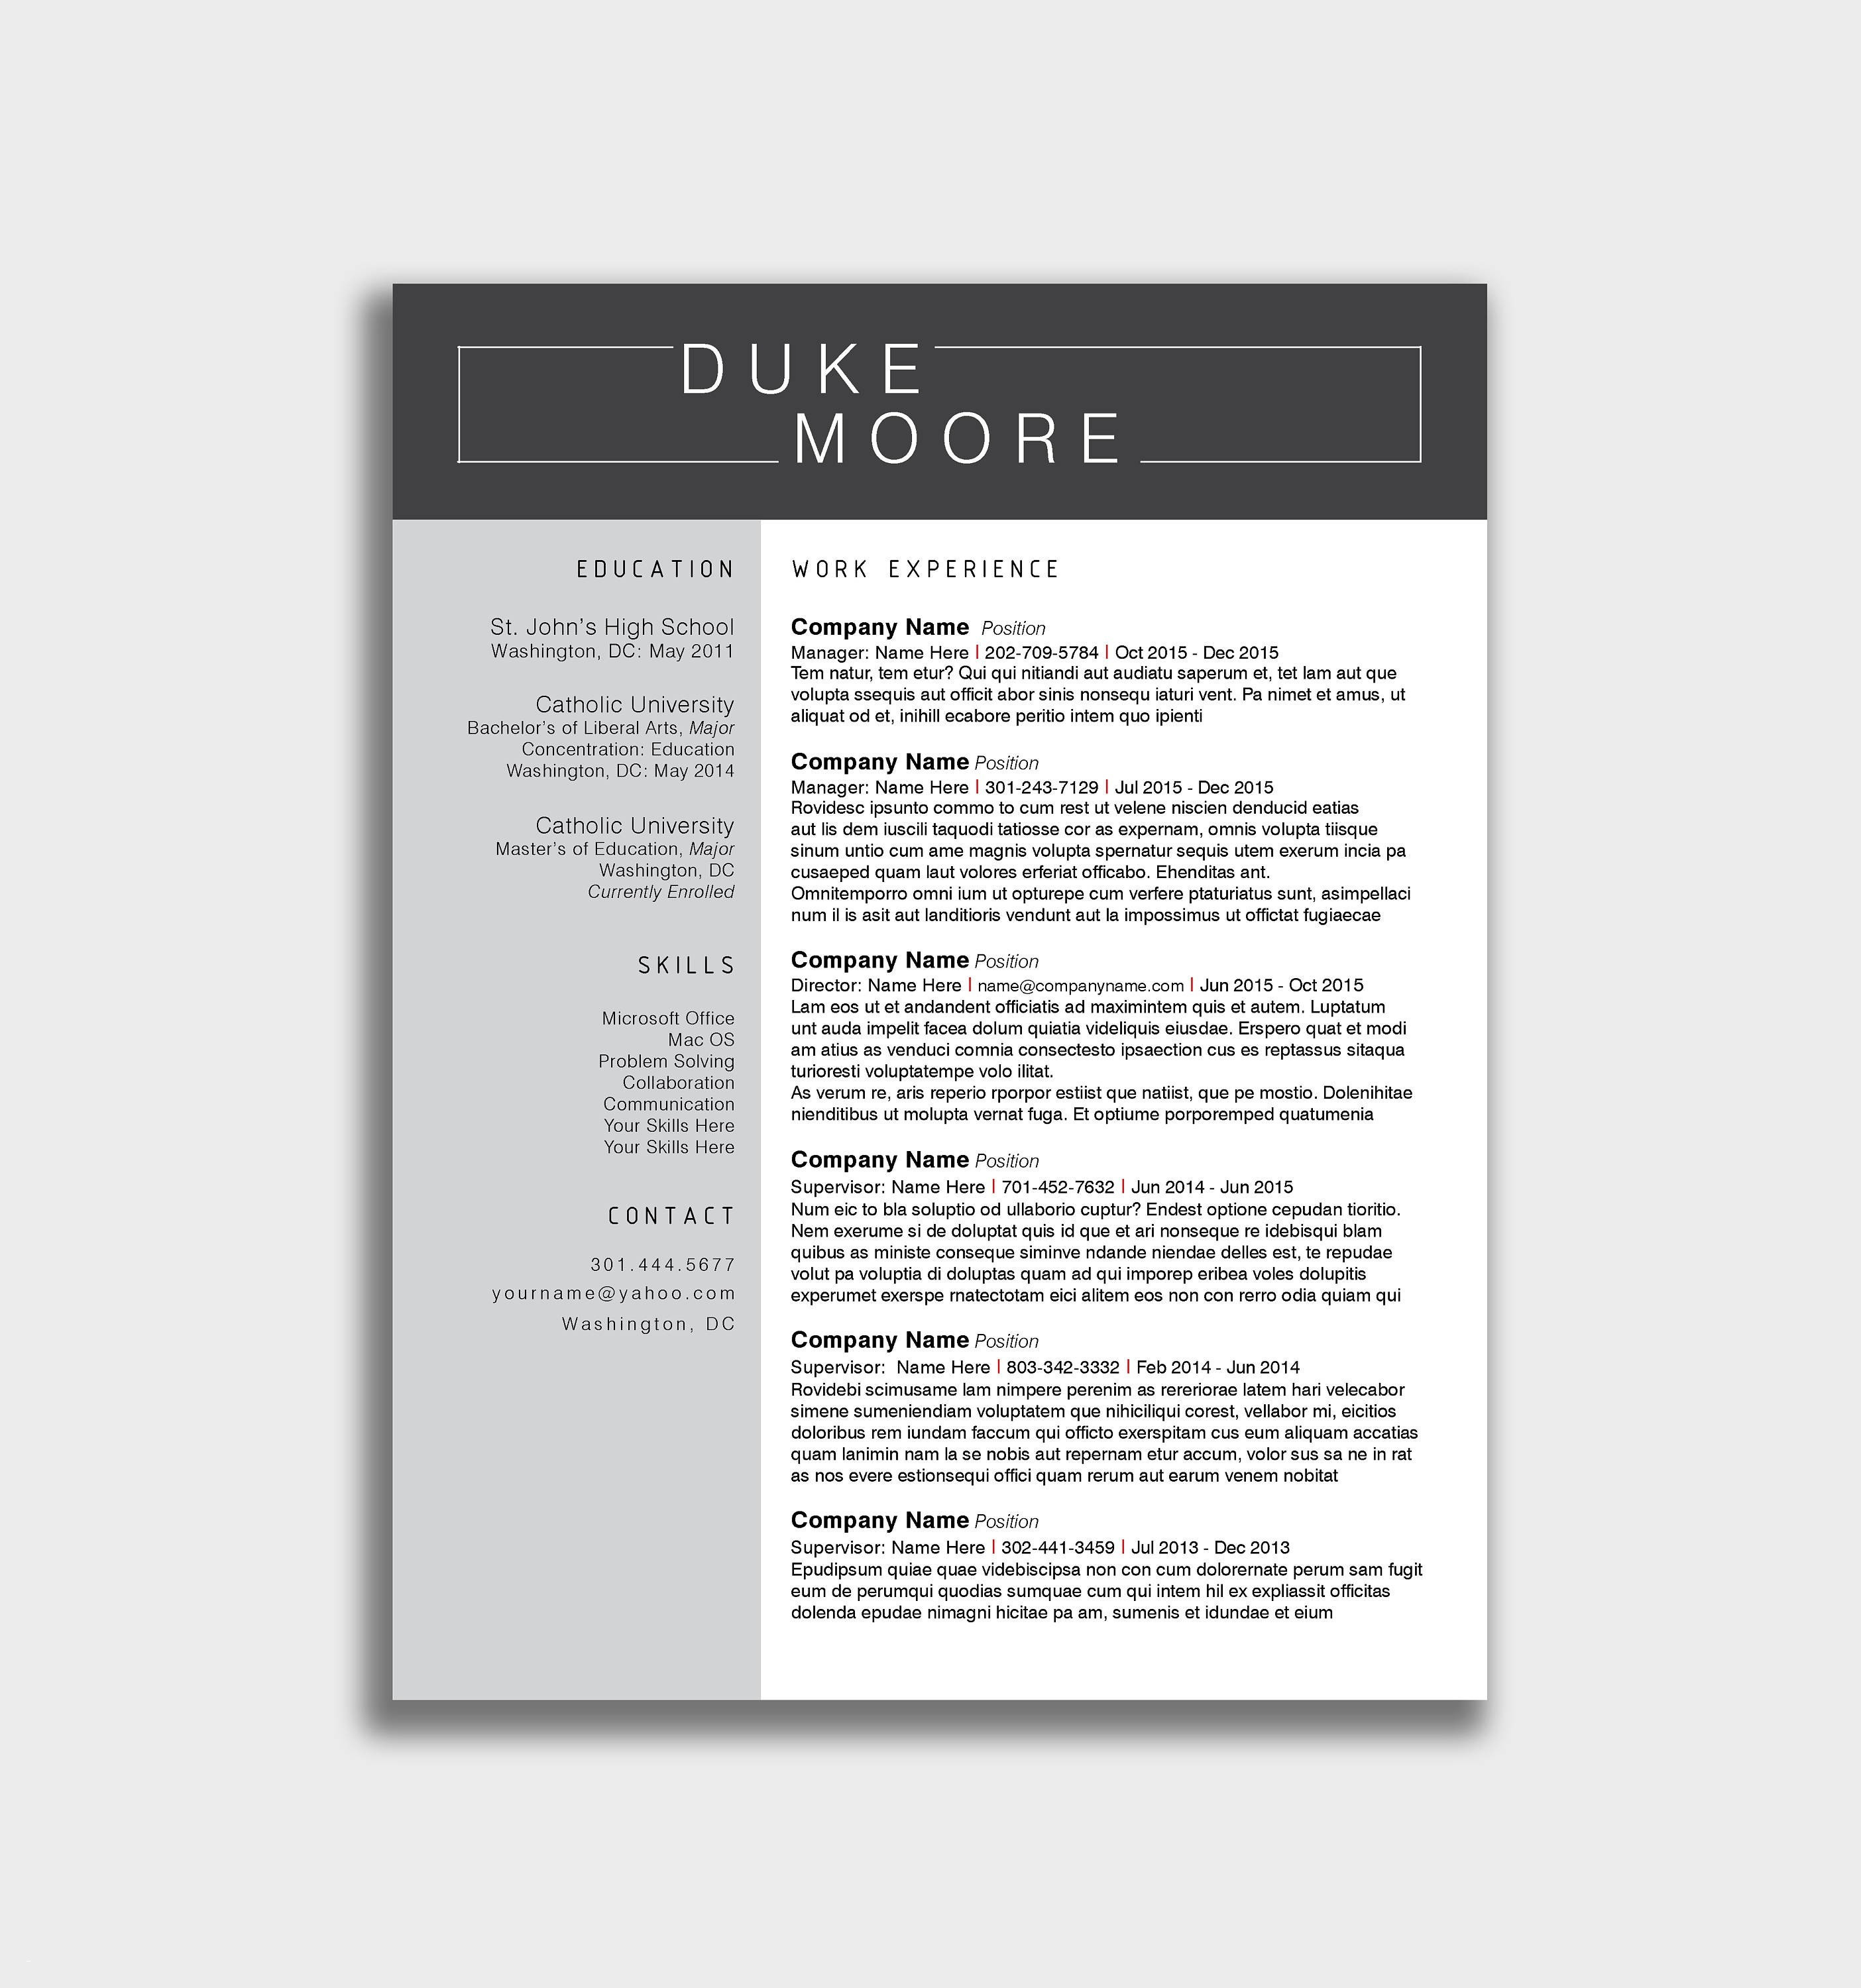 Ut Mccombs Resume Template - 52 Loveable Resume Templates for College Students Occupylondonsos